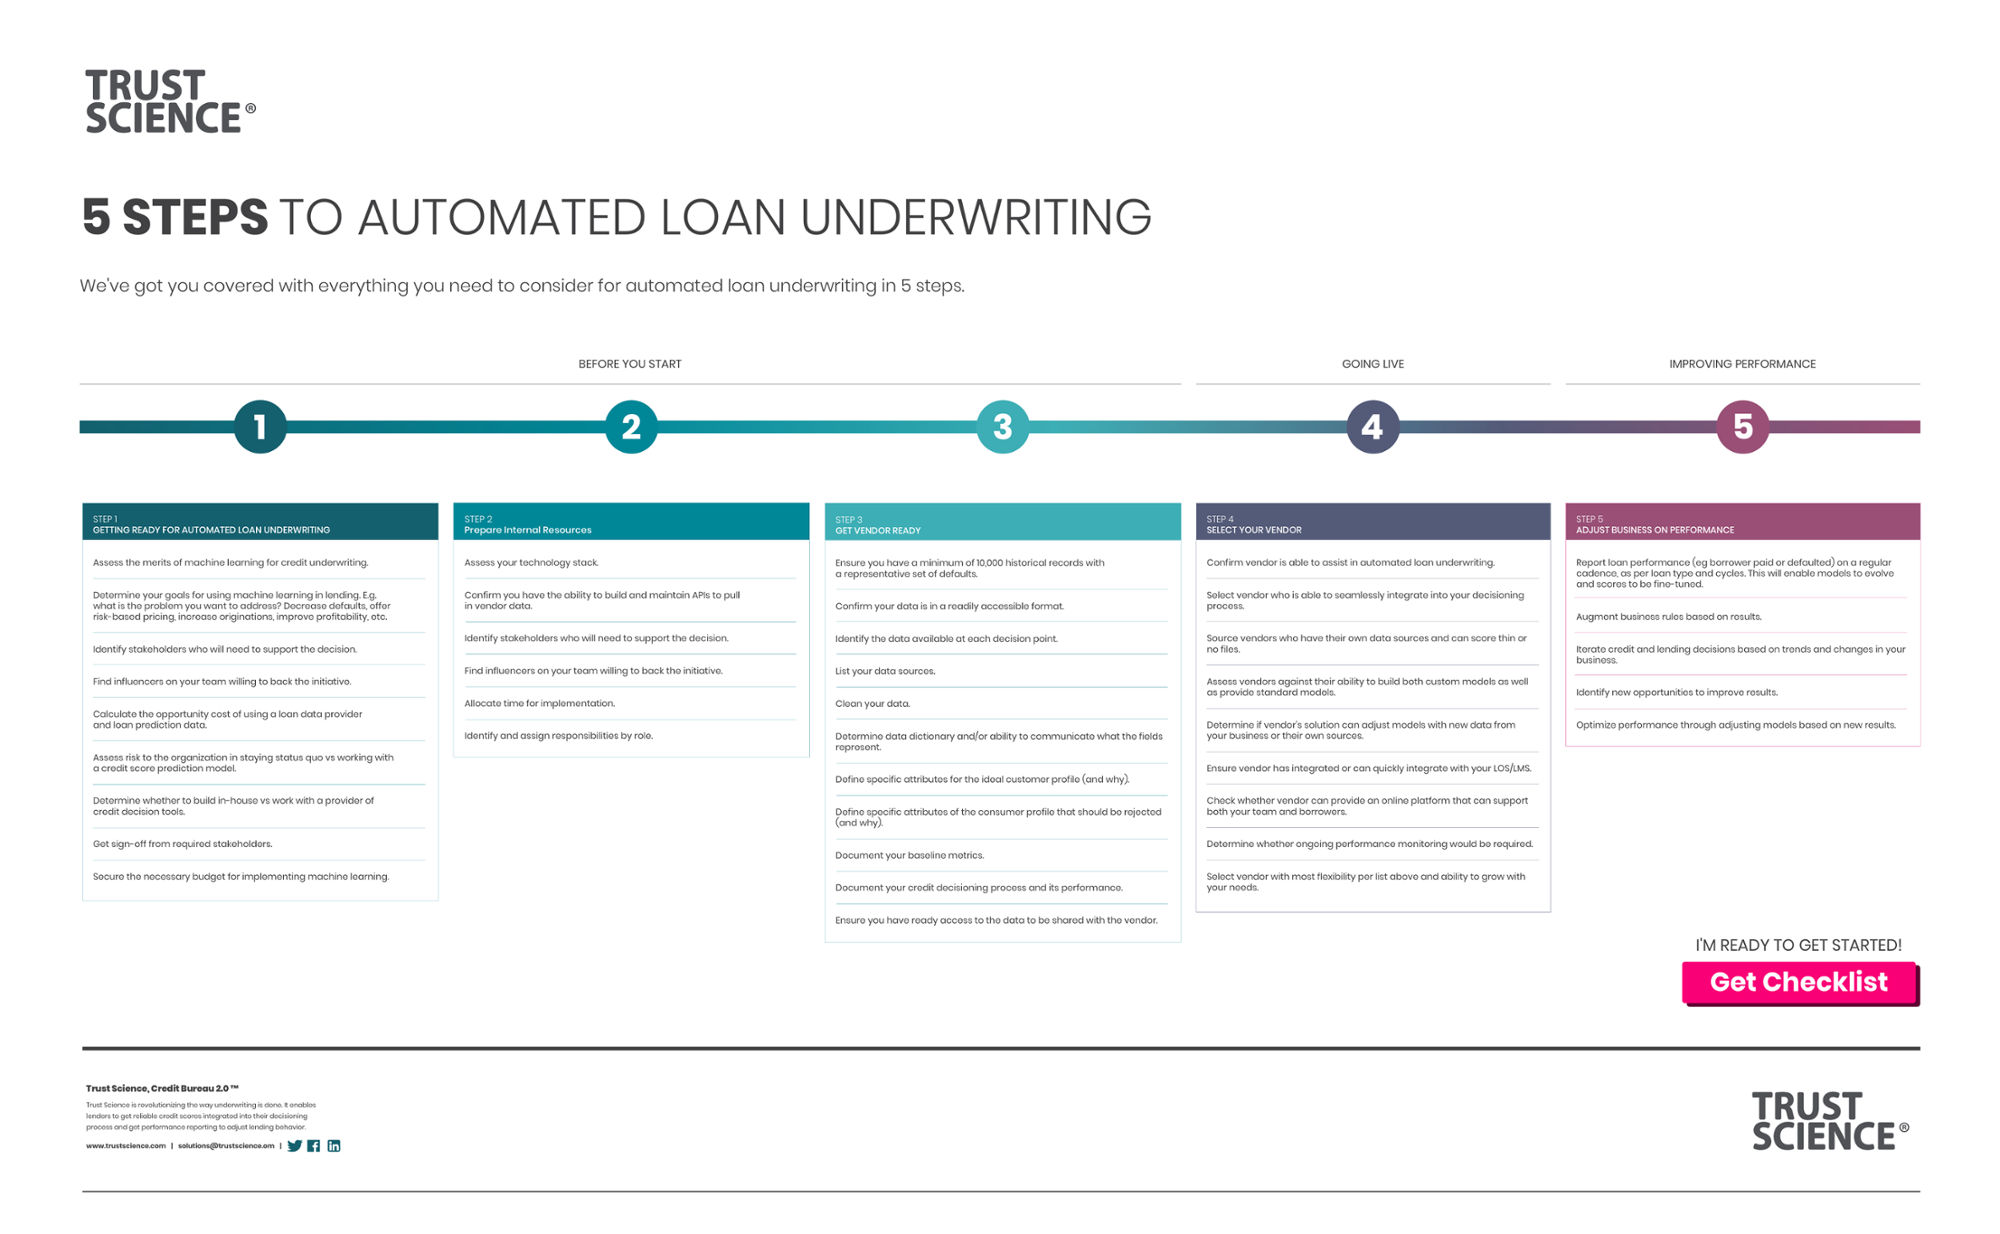 5-Steps-to-Automated Loan Underwriting-Infographic